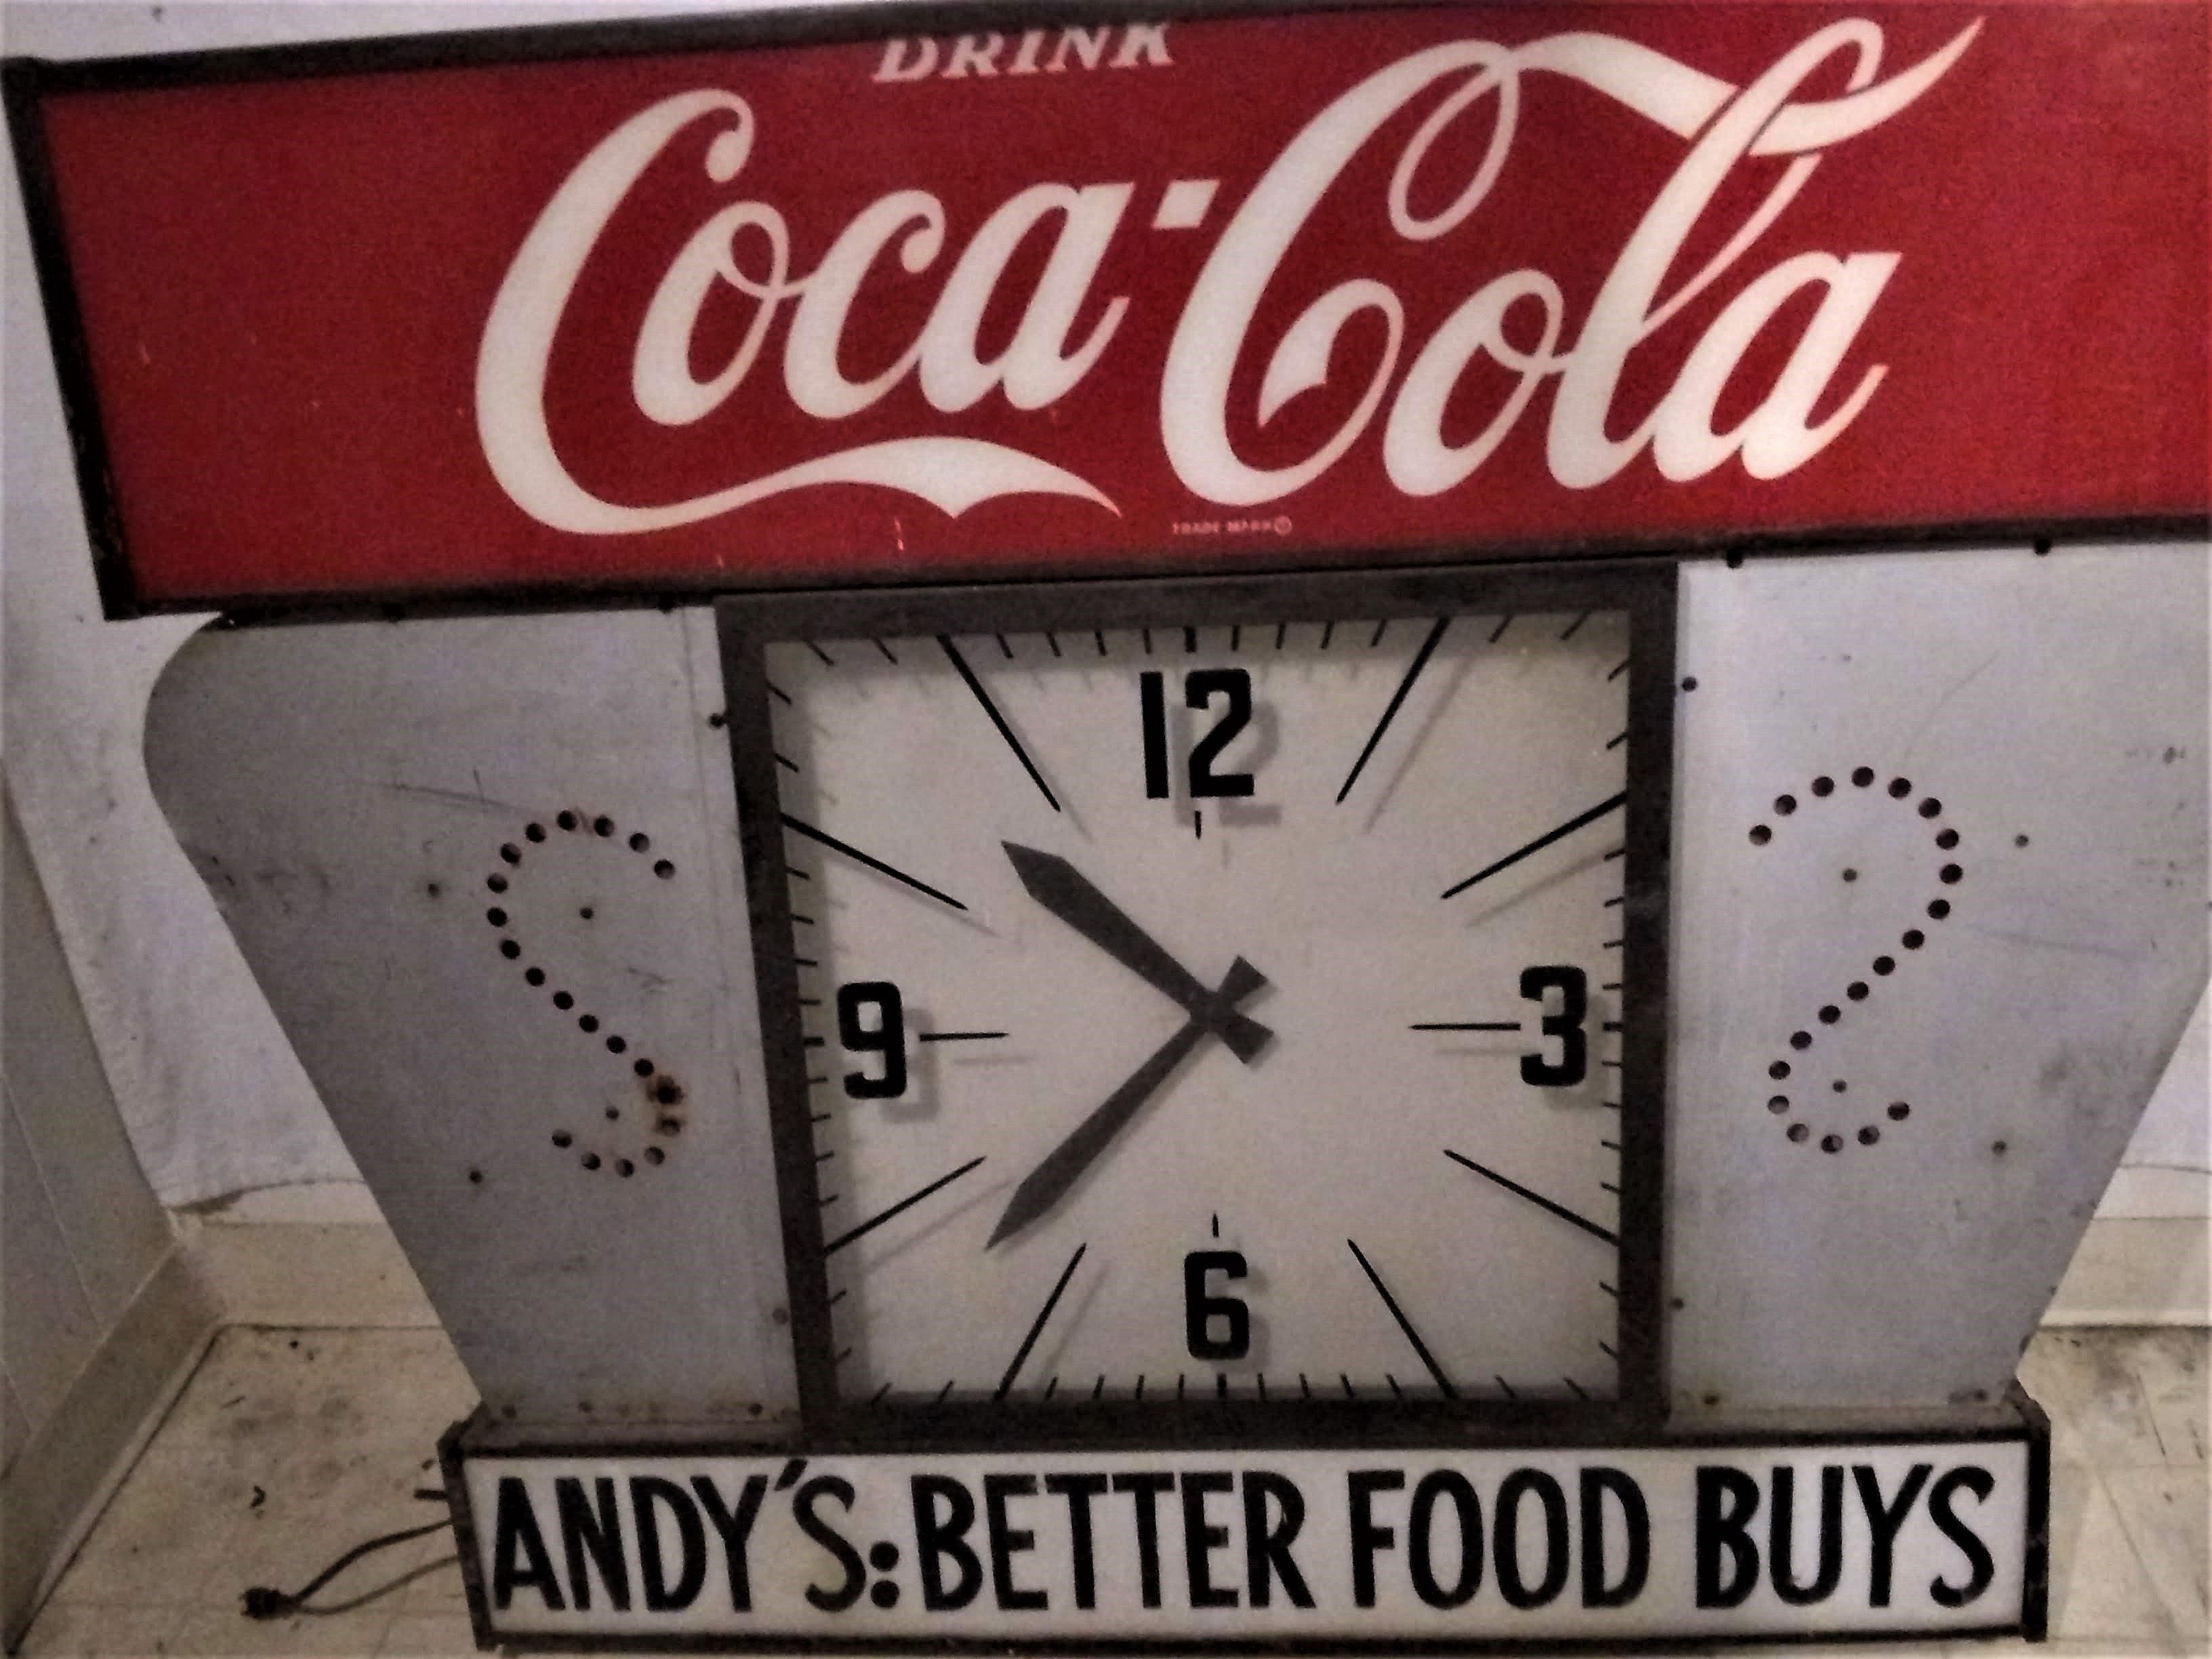 https://0201.nccdn.net/1_2/000/000/0ed/92a/coke-clock-Andy-s-lighted-3264x2448.jpg